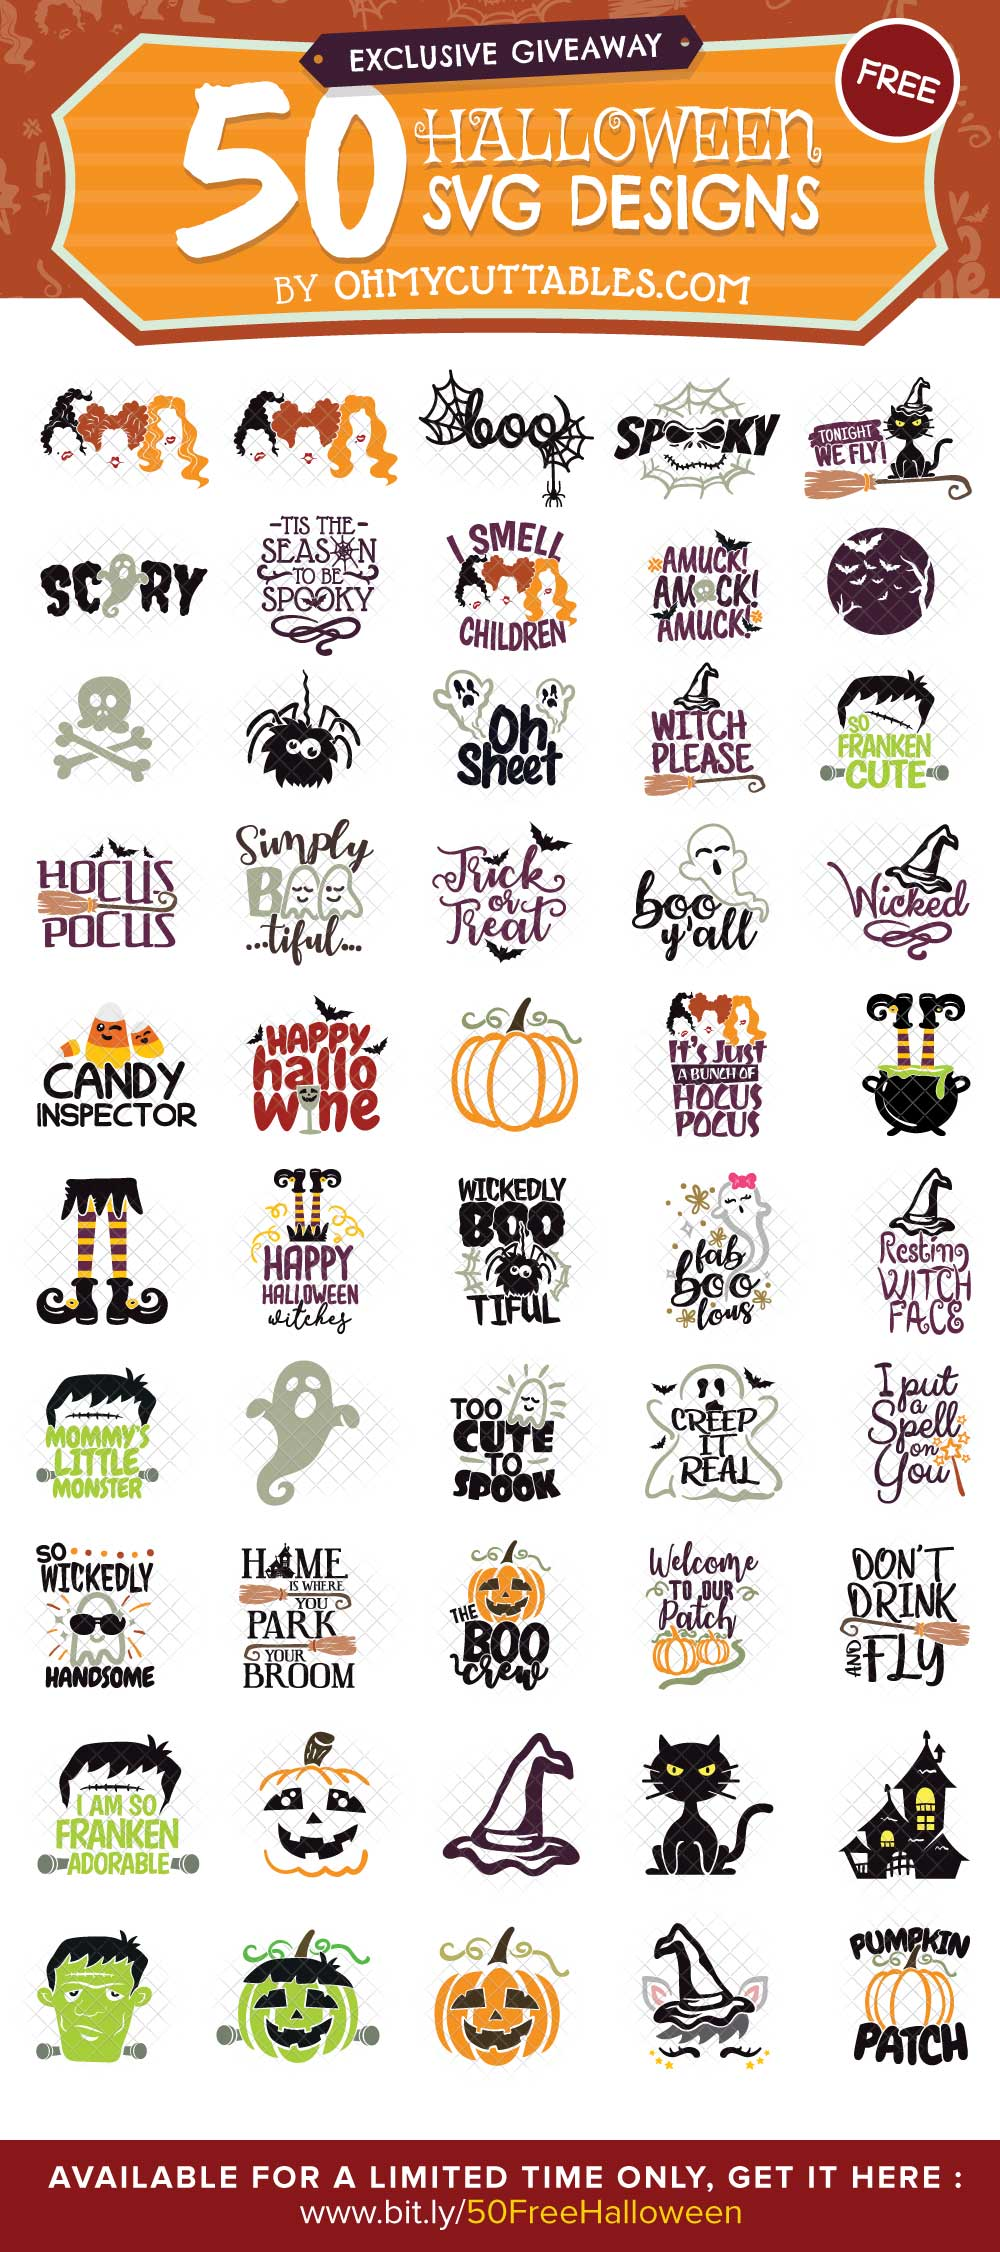 SPECIAL OFFER Halloween SVG Free Bundle OhMyCuttables